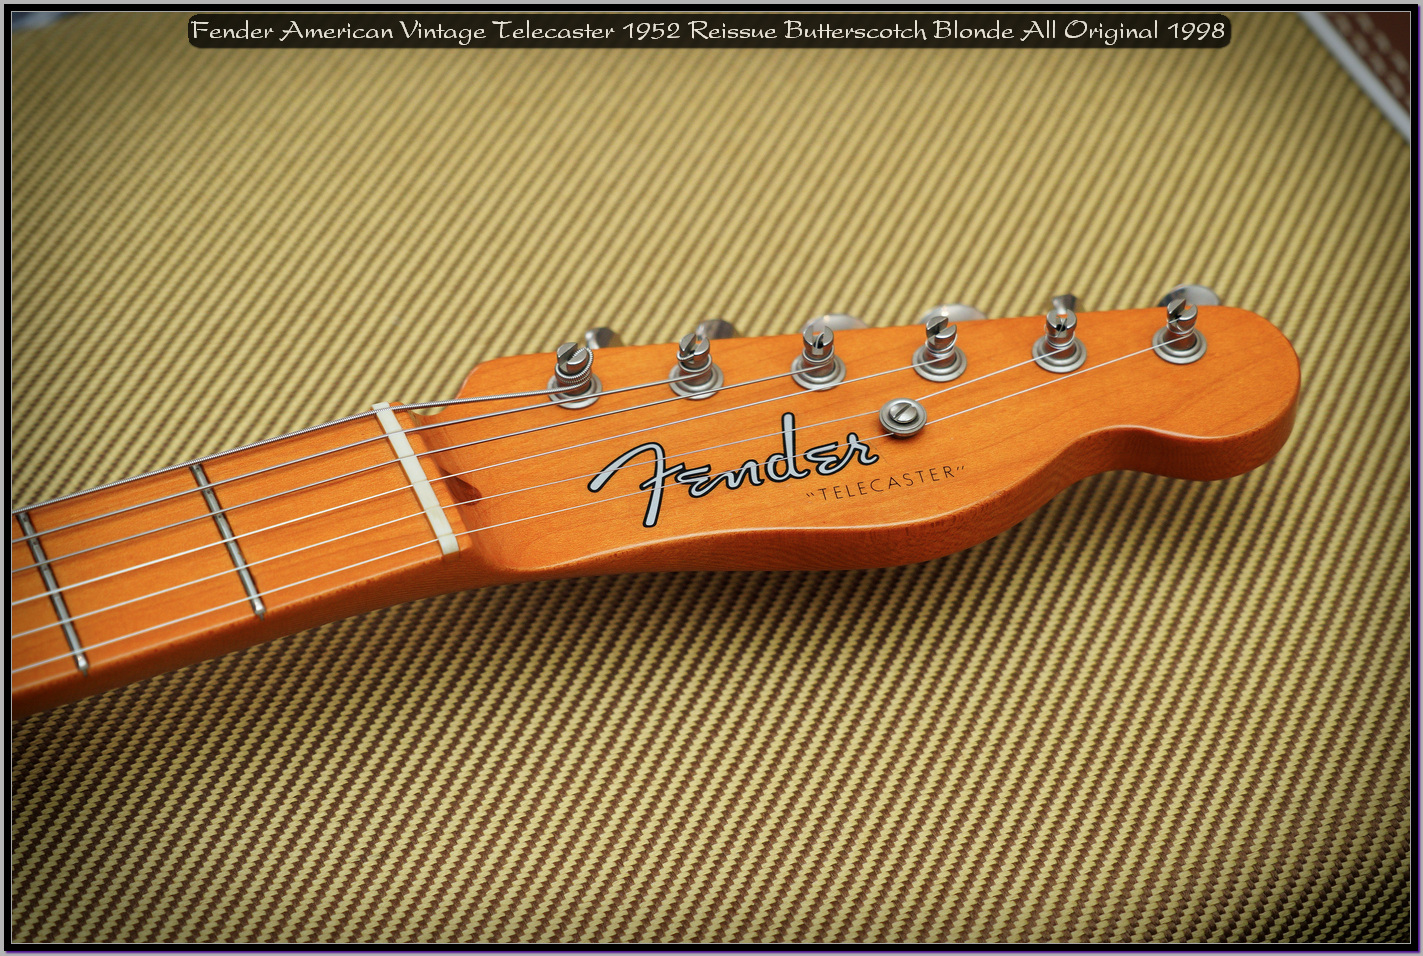 Fender American Vintage Telecaster 1952 Reissue Butterscotch Blonde All Original 1998 05_x1440.jpg